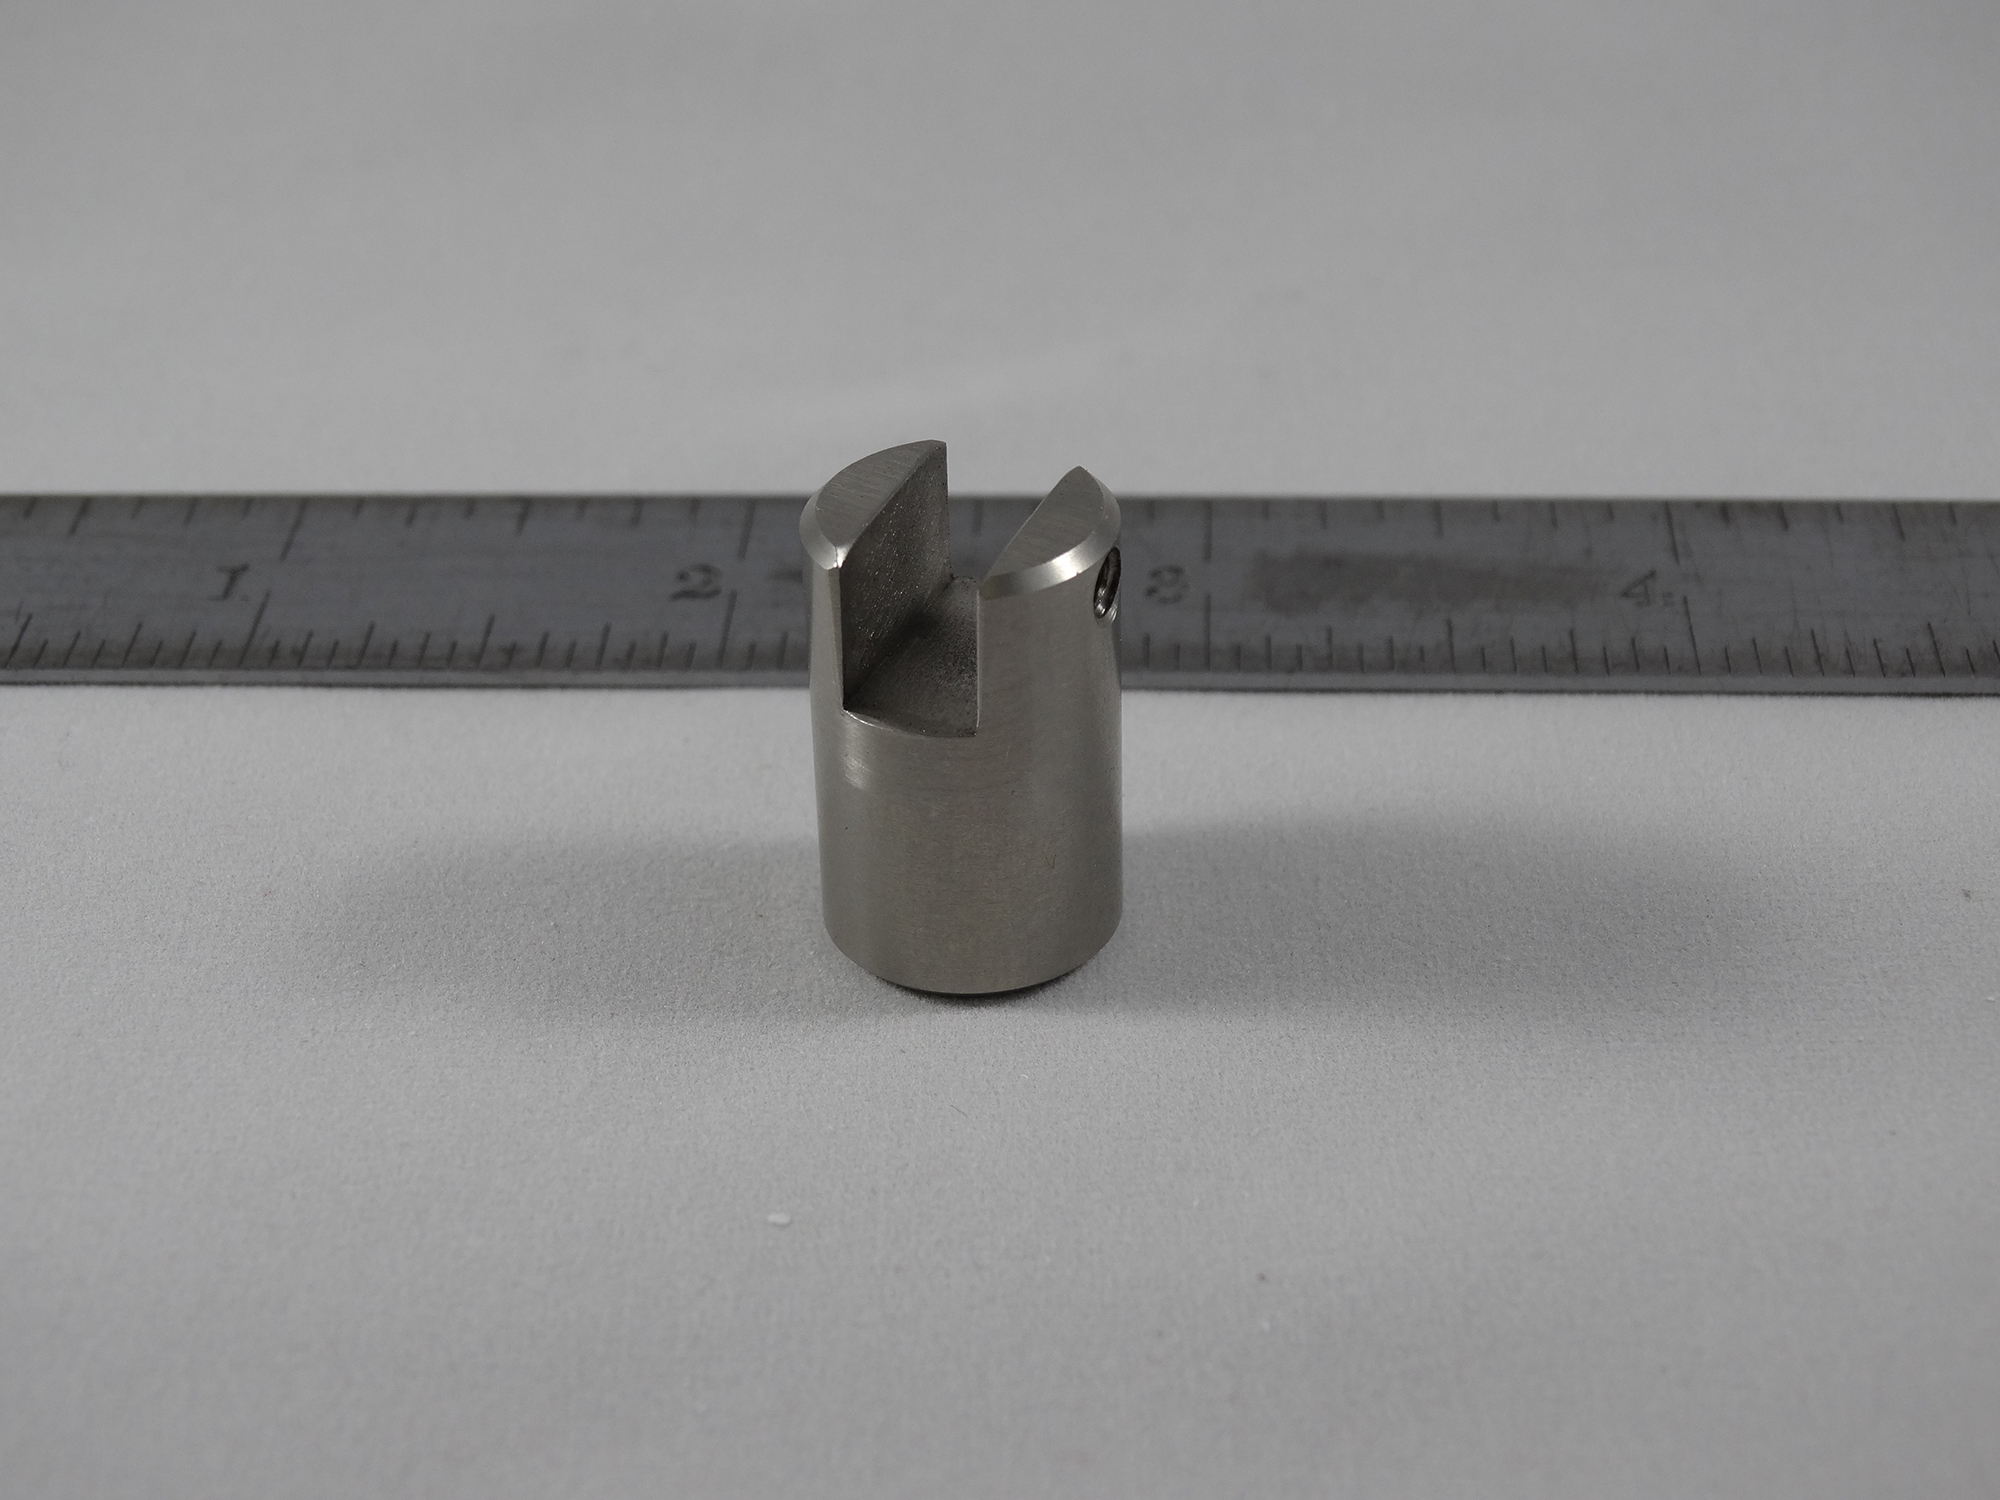 CNC Turned Part - Material: 303 Stainless Steel